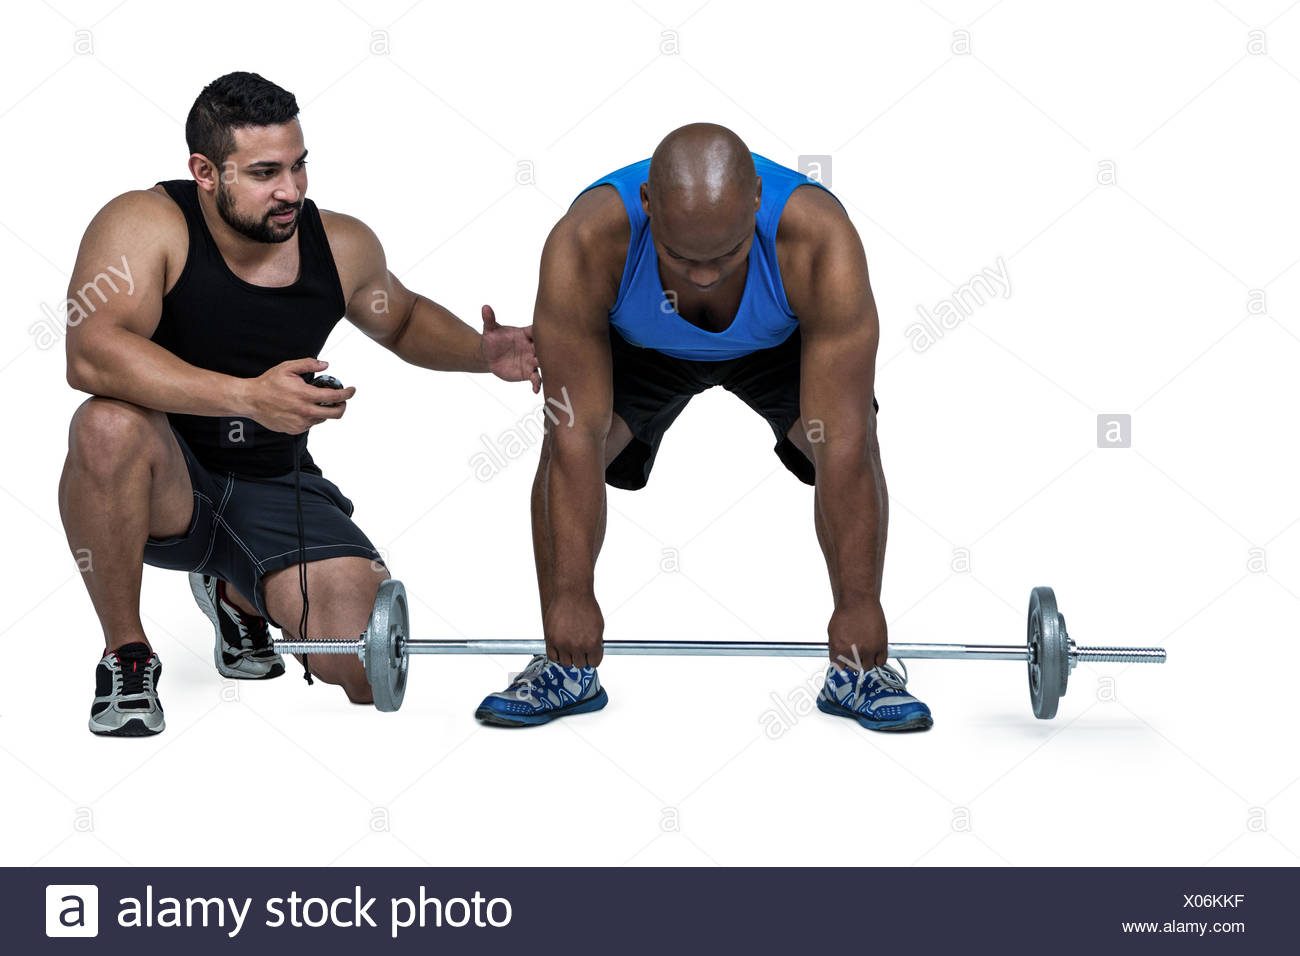 Man lifting barbell with trainer - Stock Image